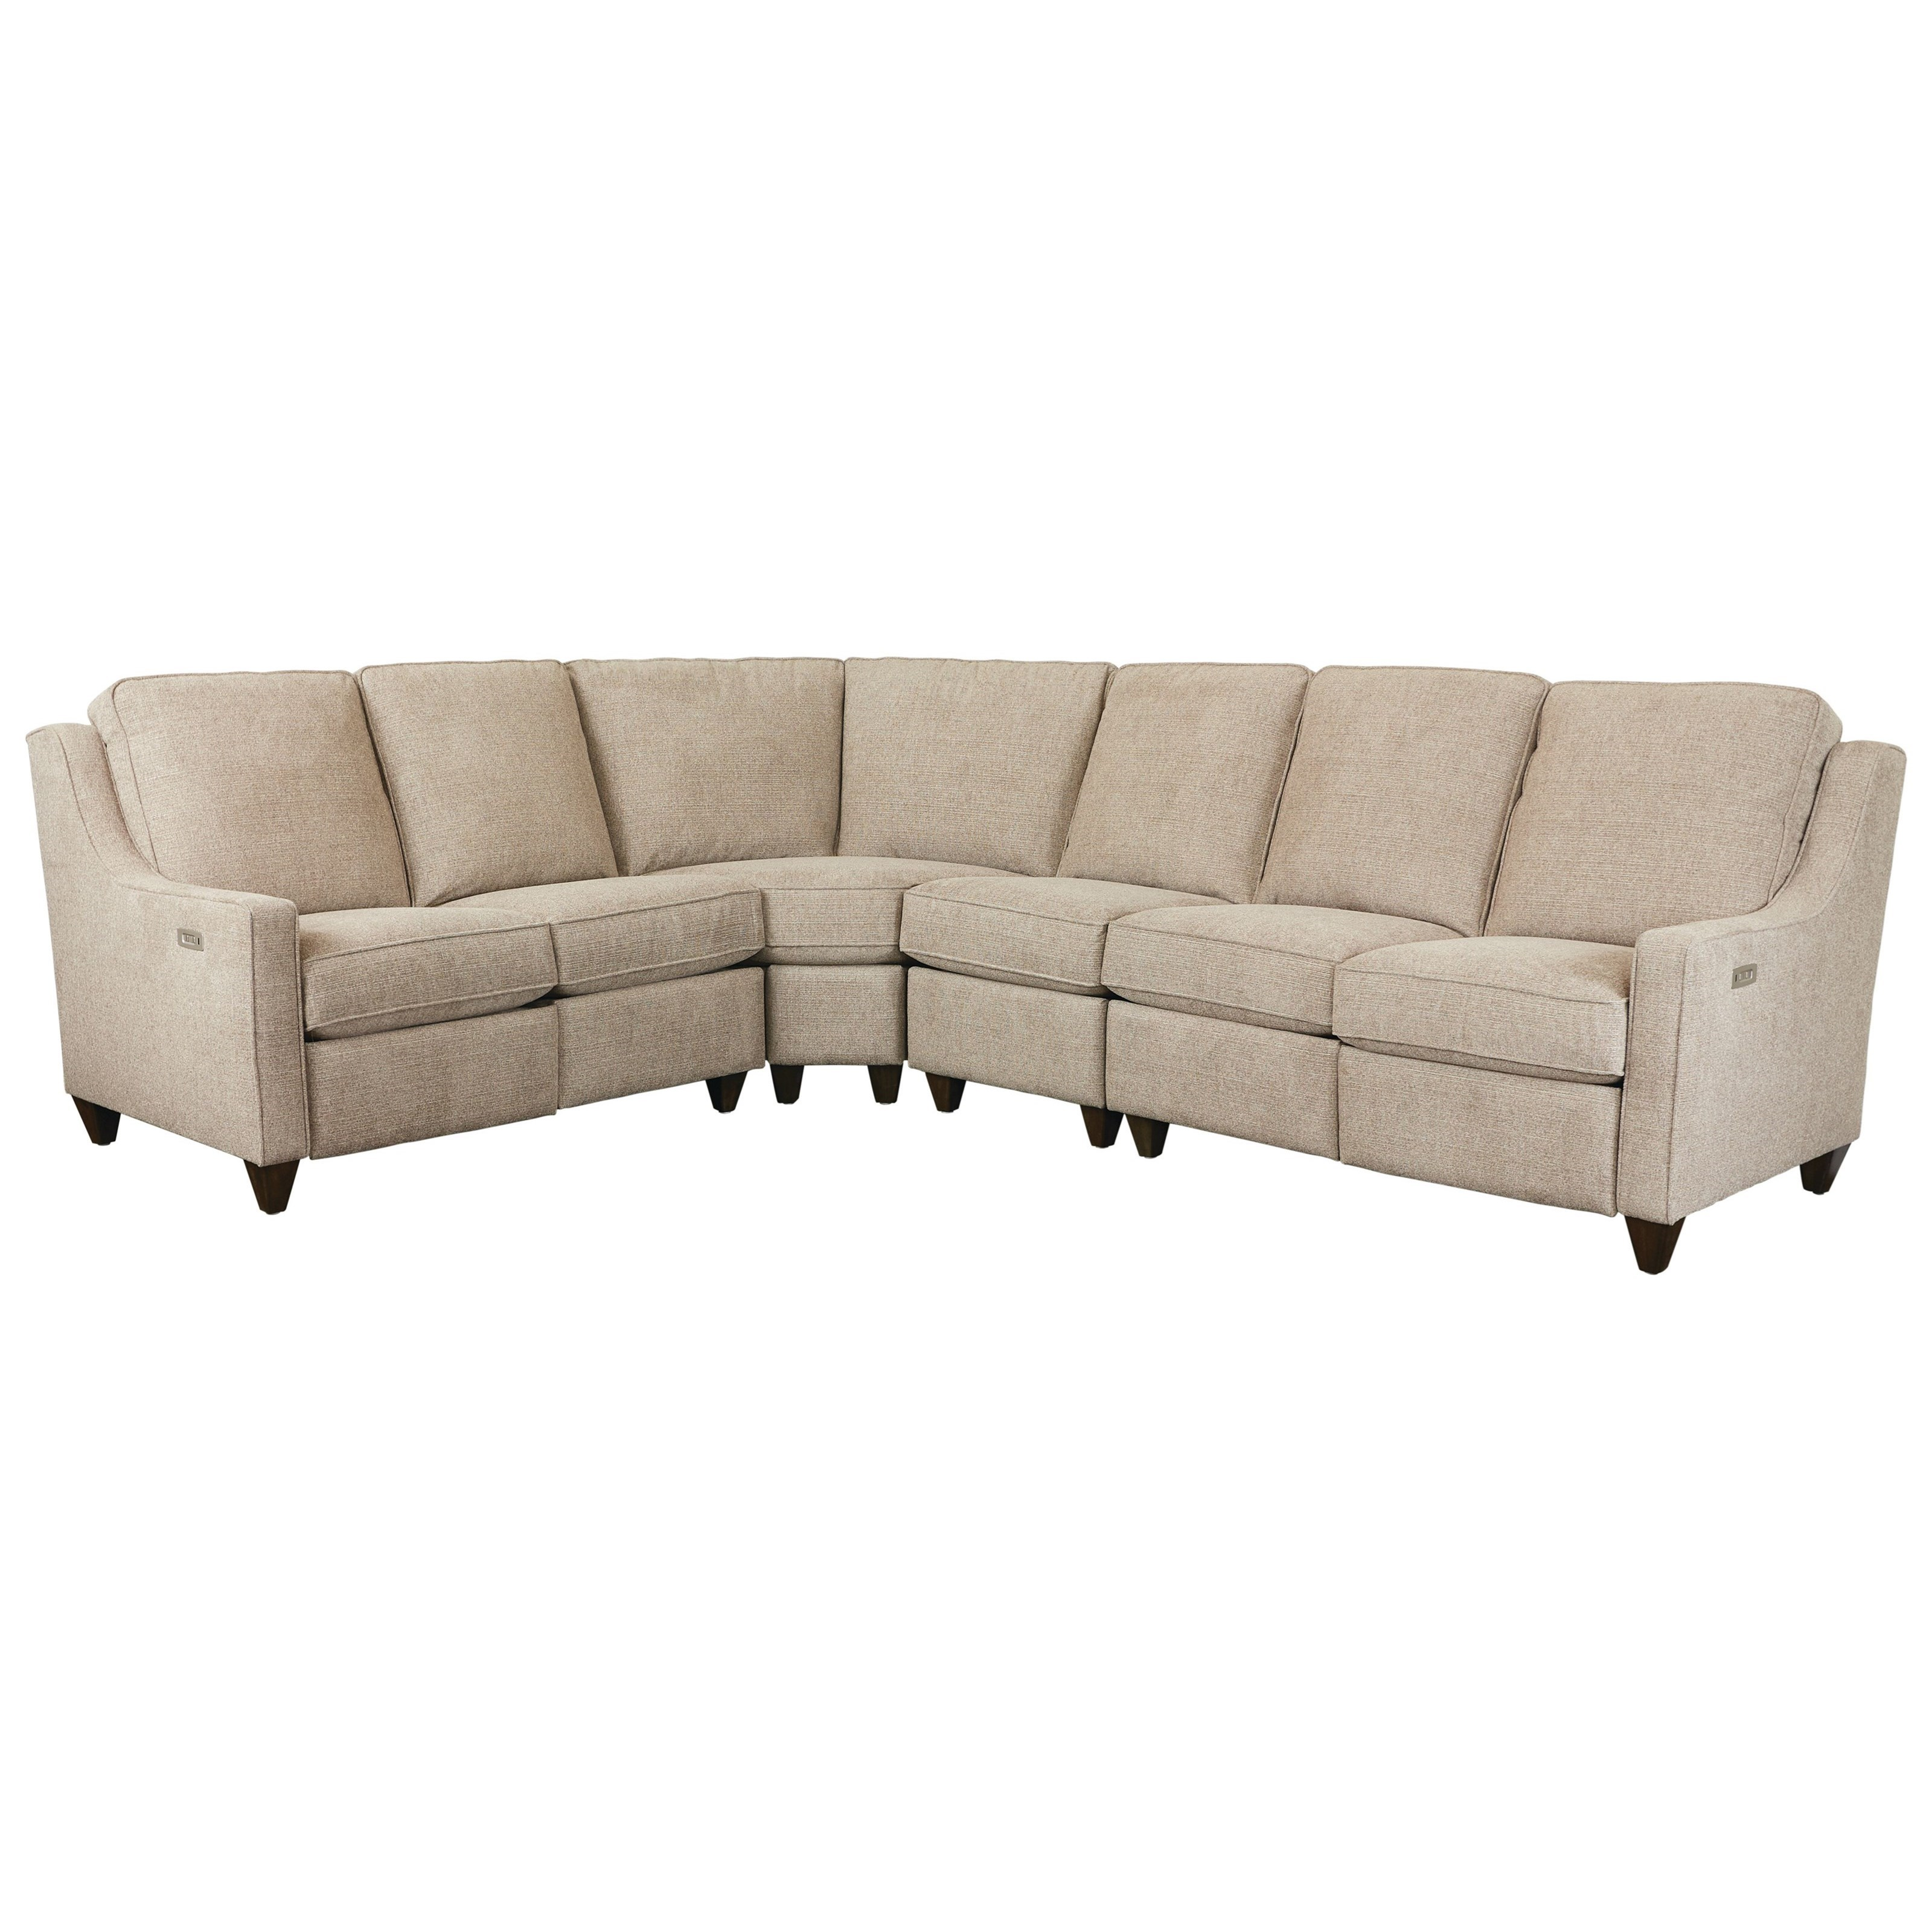 Magnificent Motion Customizable 4-Pc Power Reclining Sectional by Bassett at Suburban Furniture